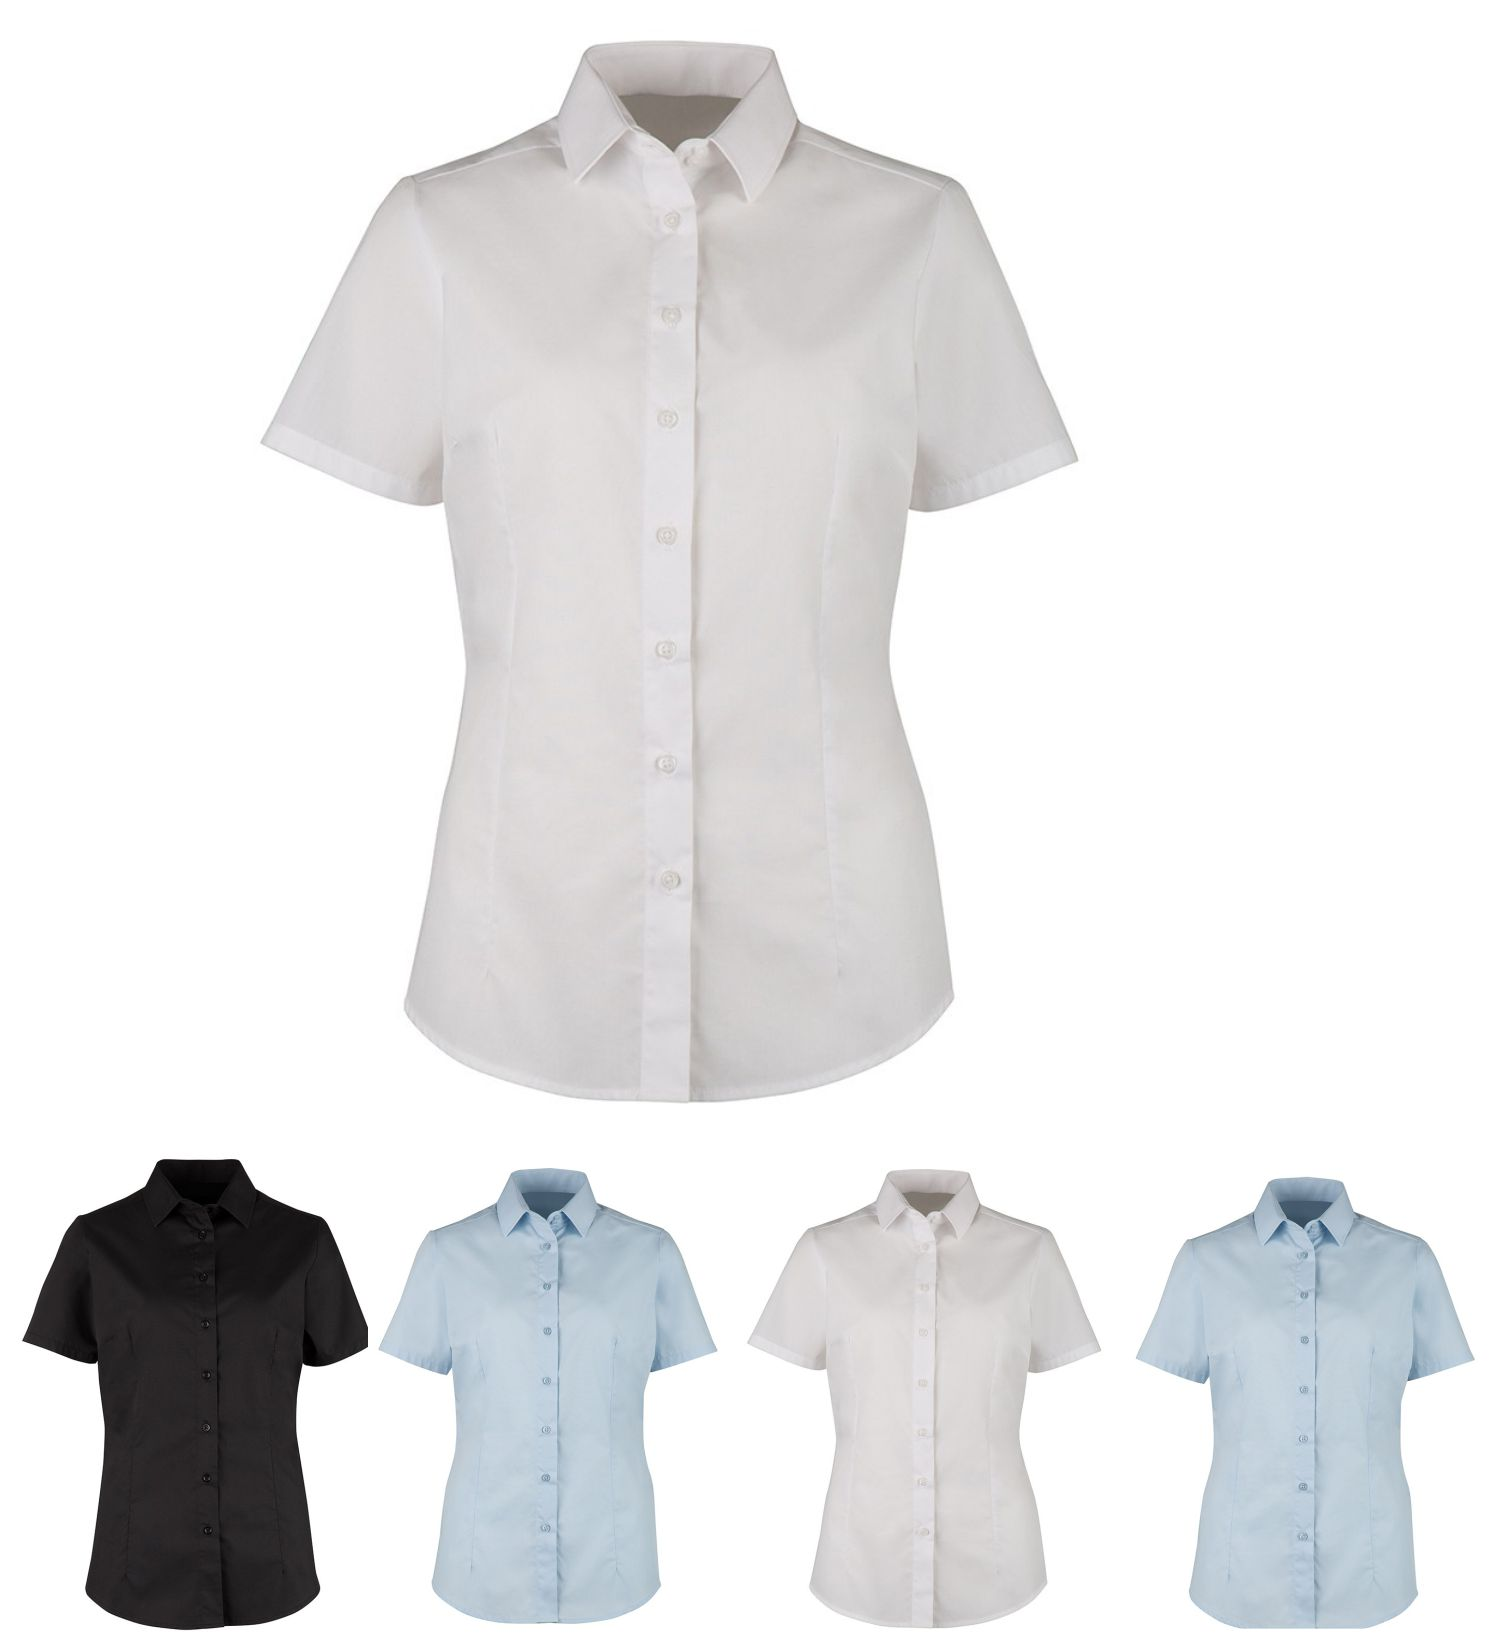 NF76 Women's Contemporary Short Sleeve Blouse